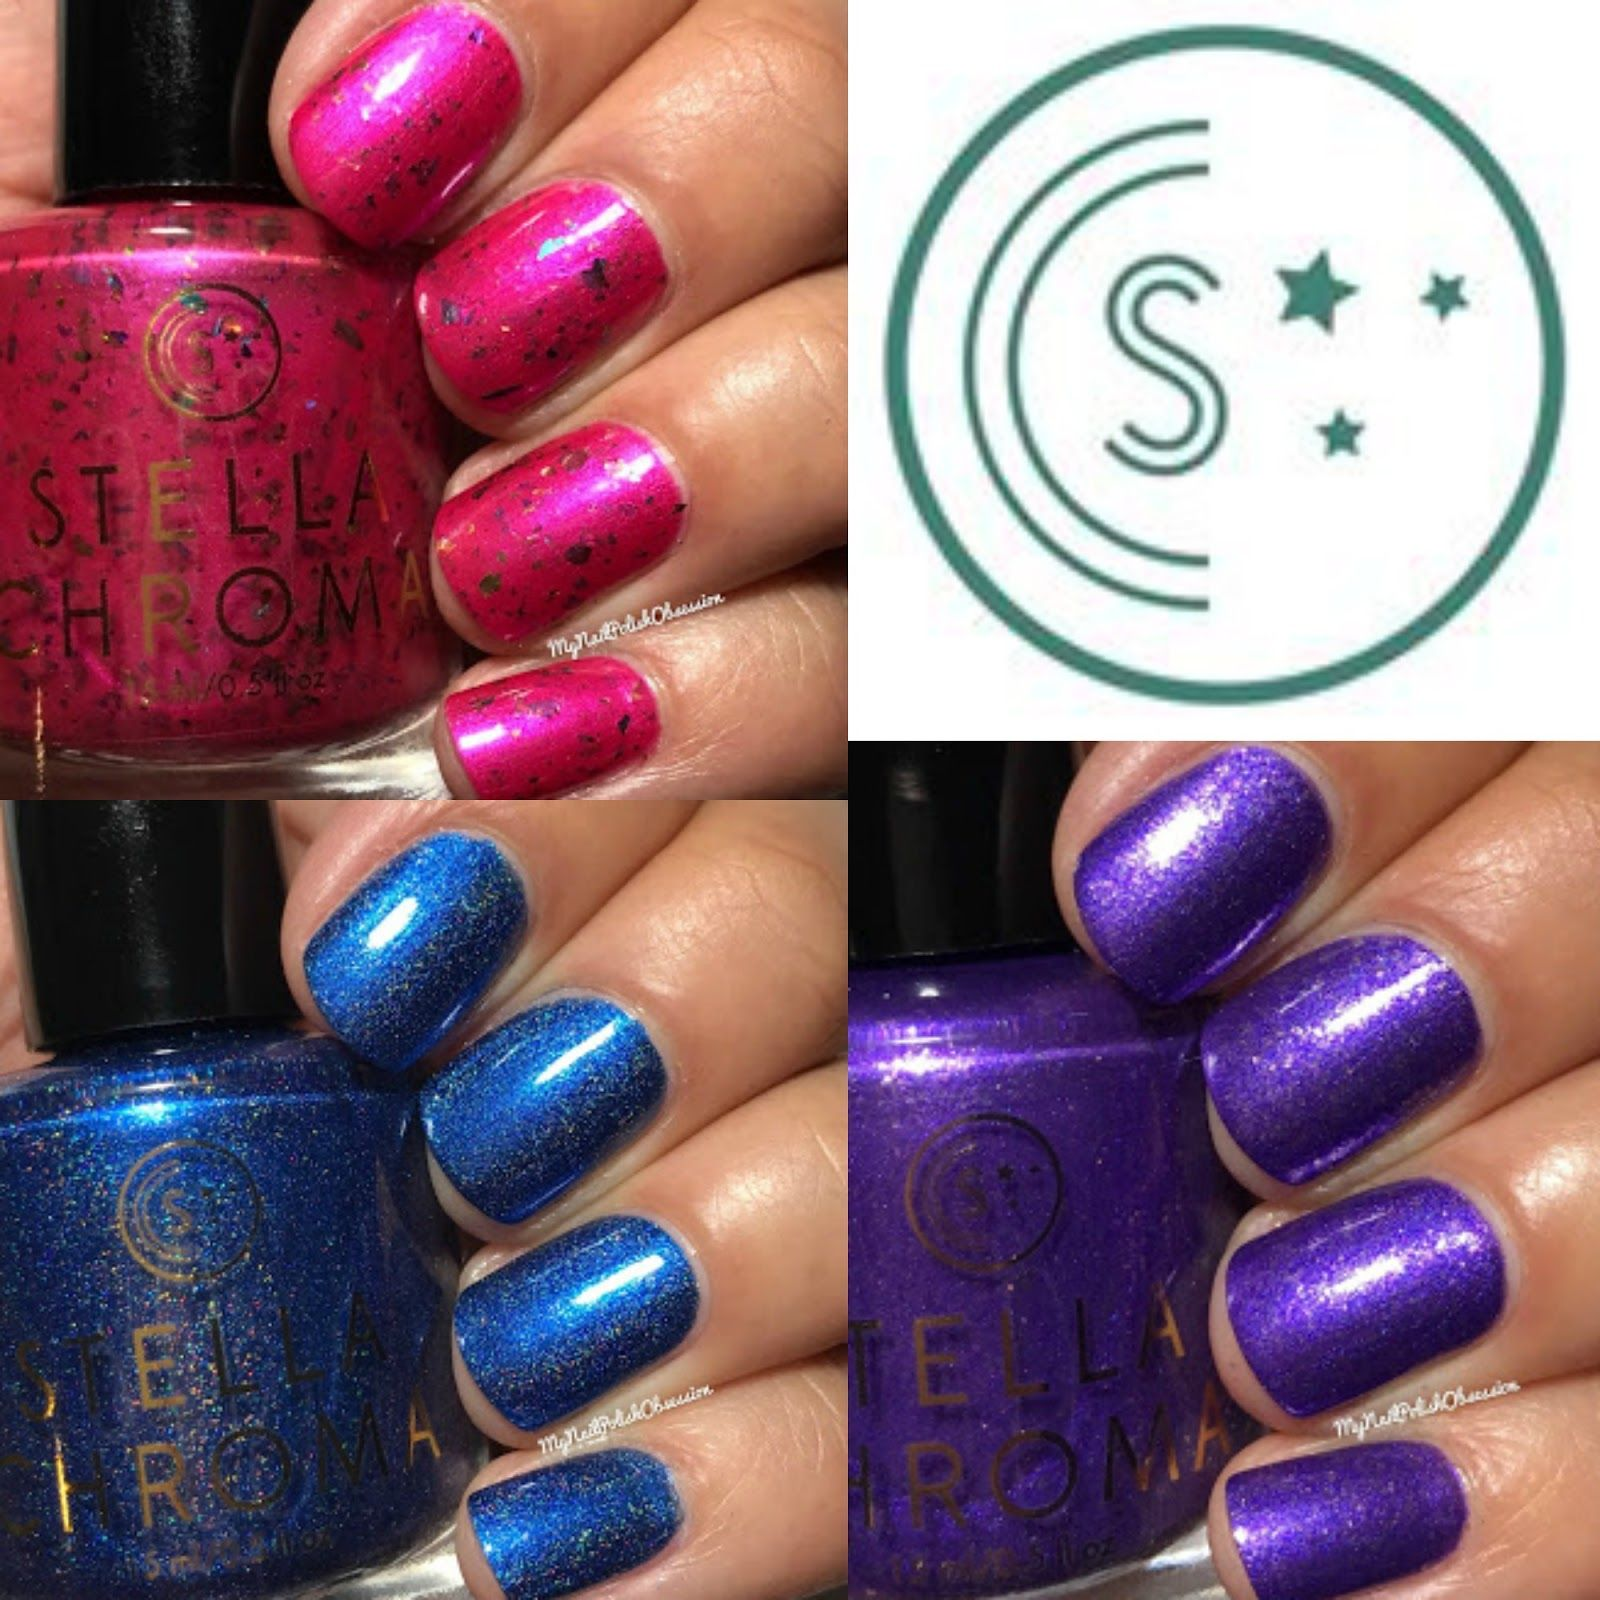 STELLA CHROMA Premier Collection review by My Nail Polish